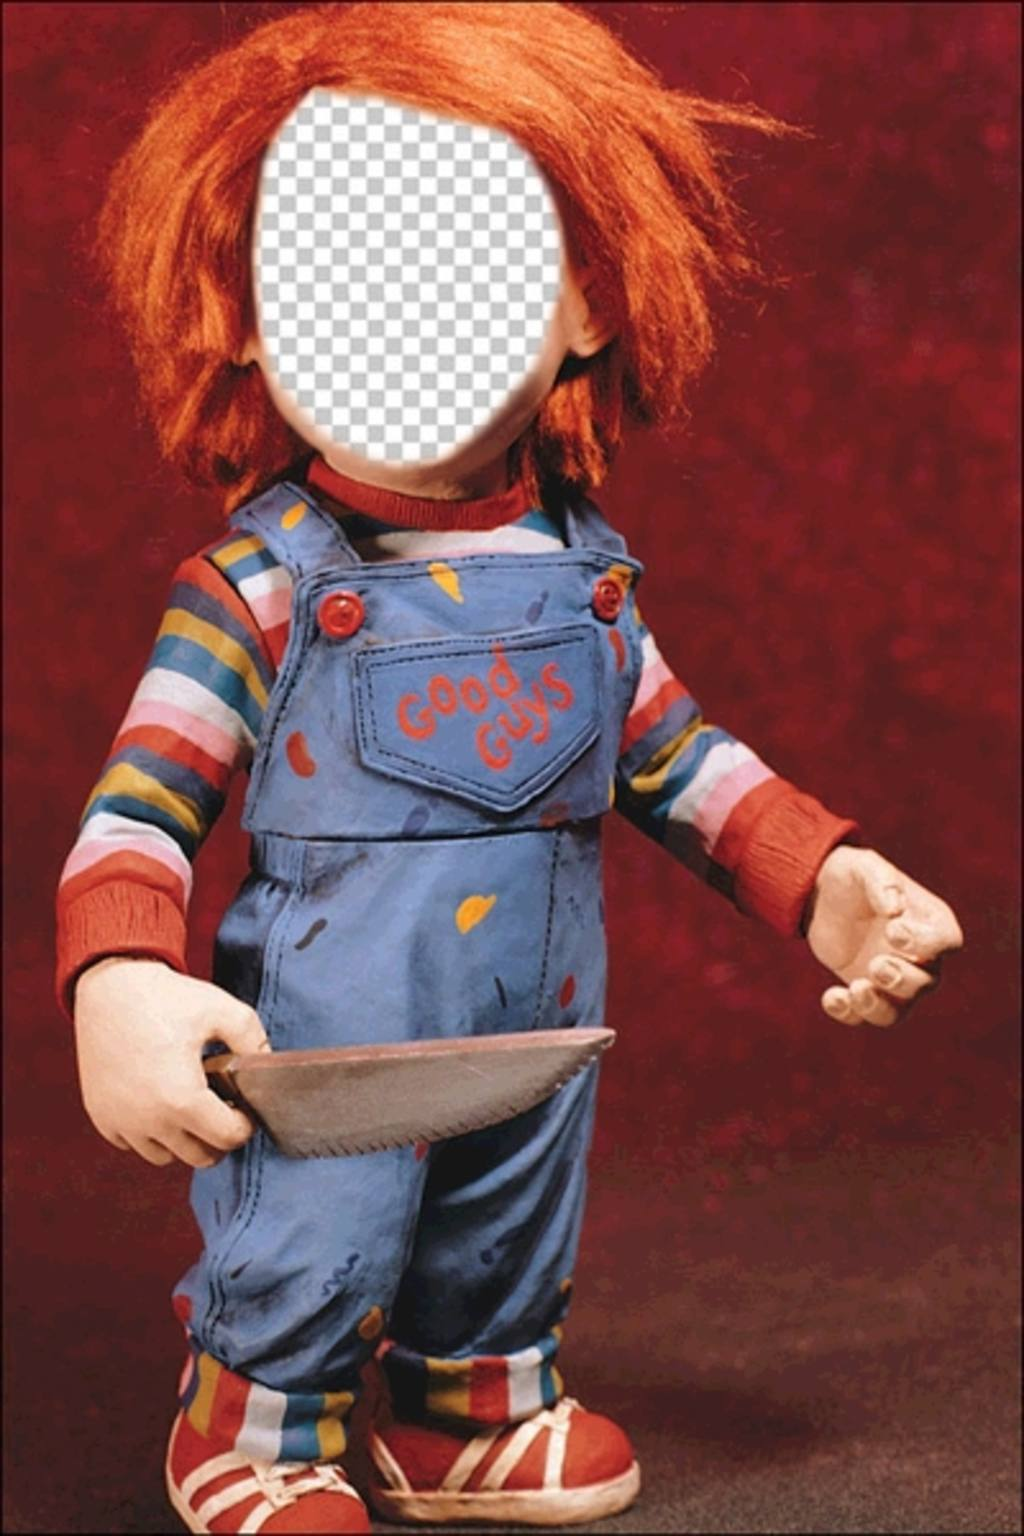 Photomontage of Chucky with a knife to put your face